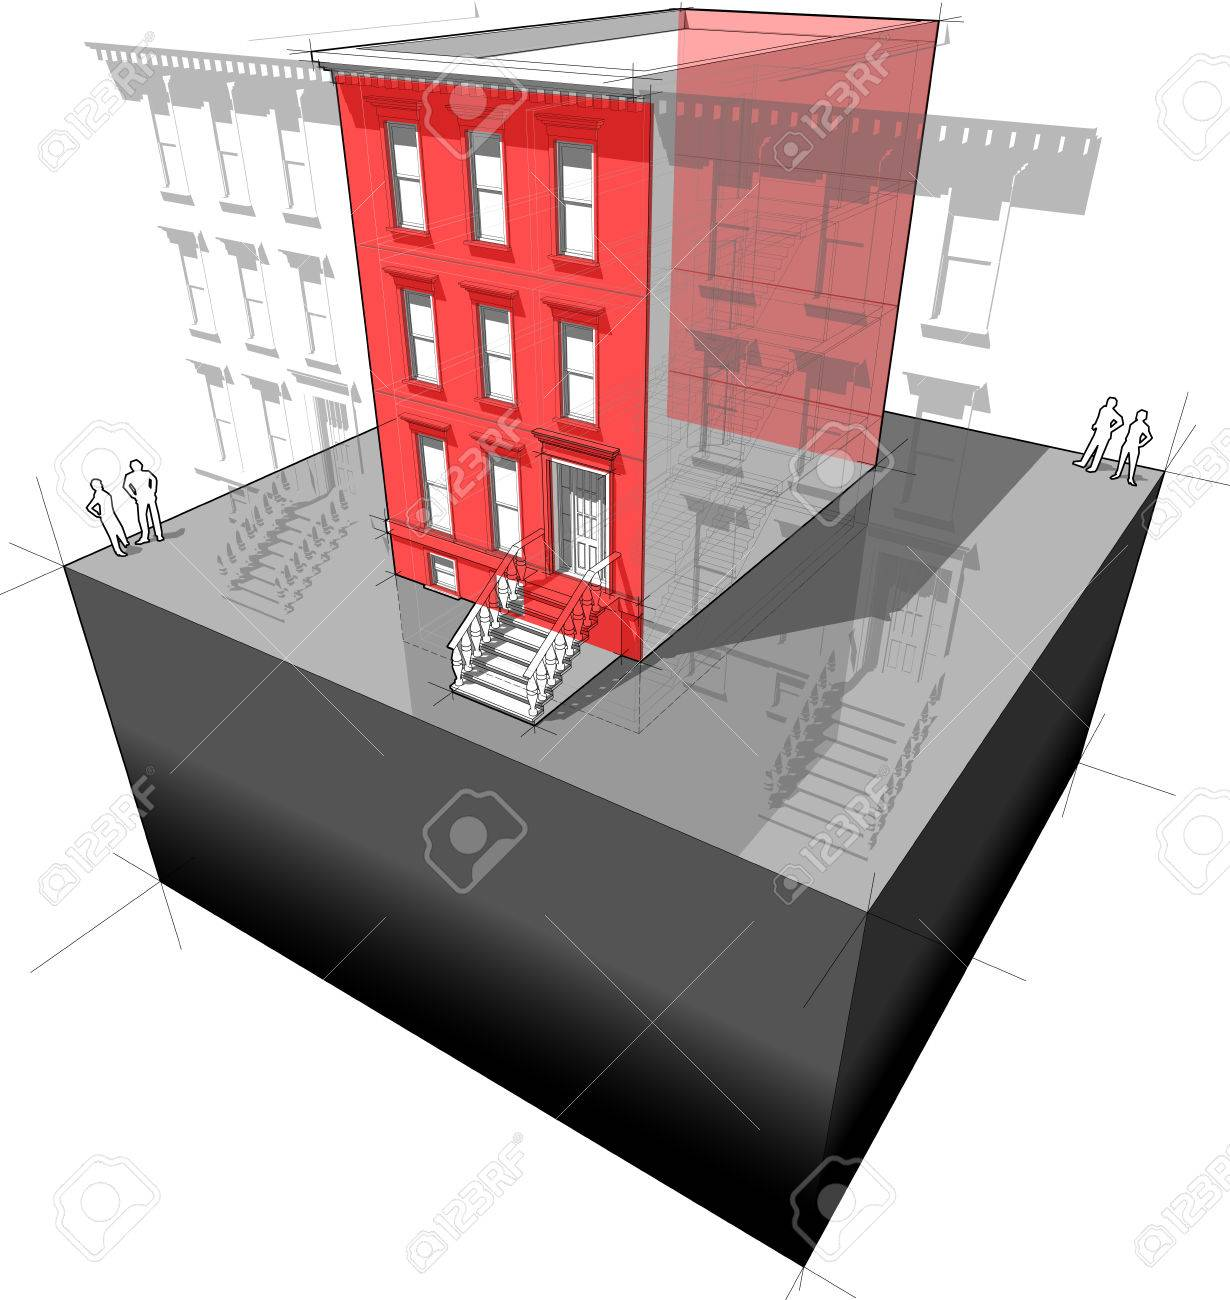 Diagram of a typical american townhouse aka brownstone with banco de imagens diagram of a typical american townhouse aka brownstone with additional wall insulation to improve energy efficiency of the building ccuart Image collections